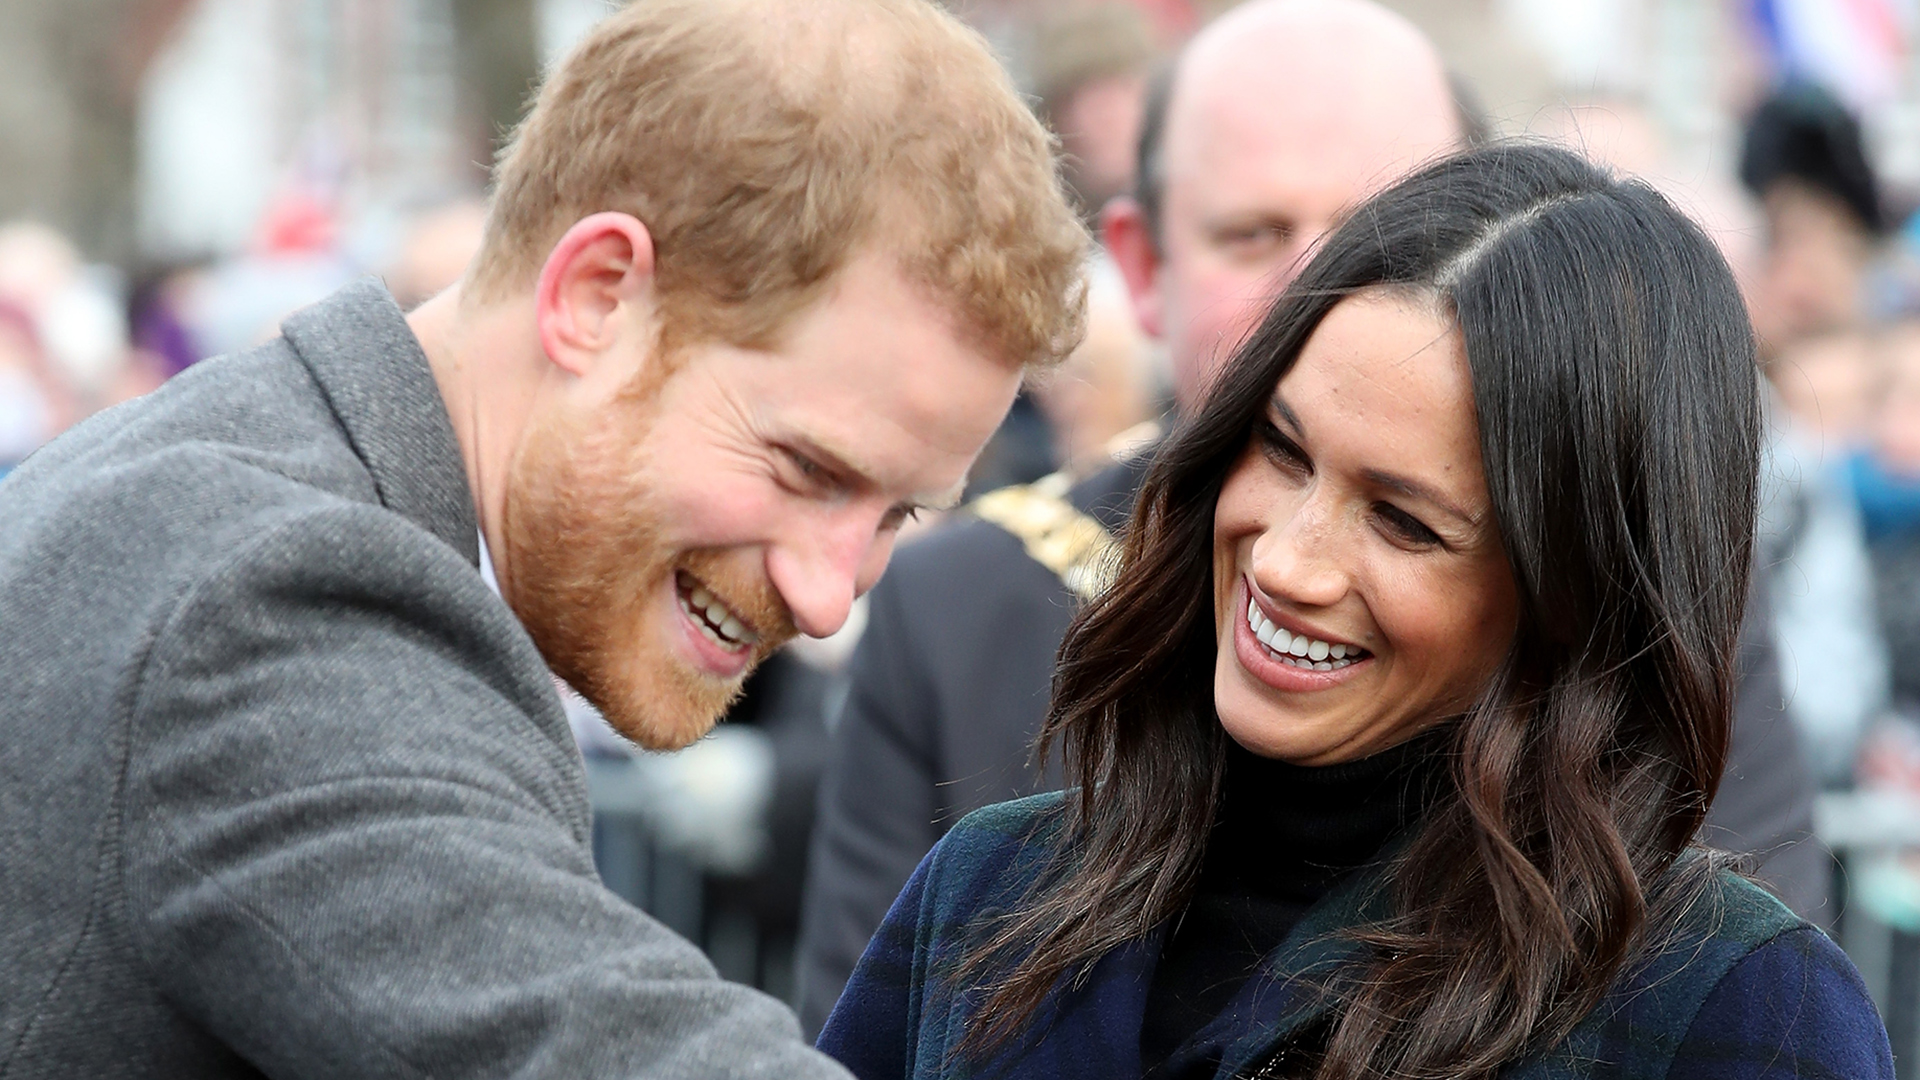 meghan markle and prince harry s wedding cake sounds royally delicious https www today com food prince harry meghan markle s wedding cake sounds royally delicious t125340